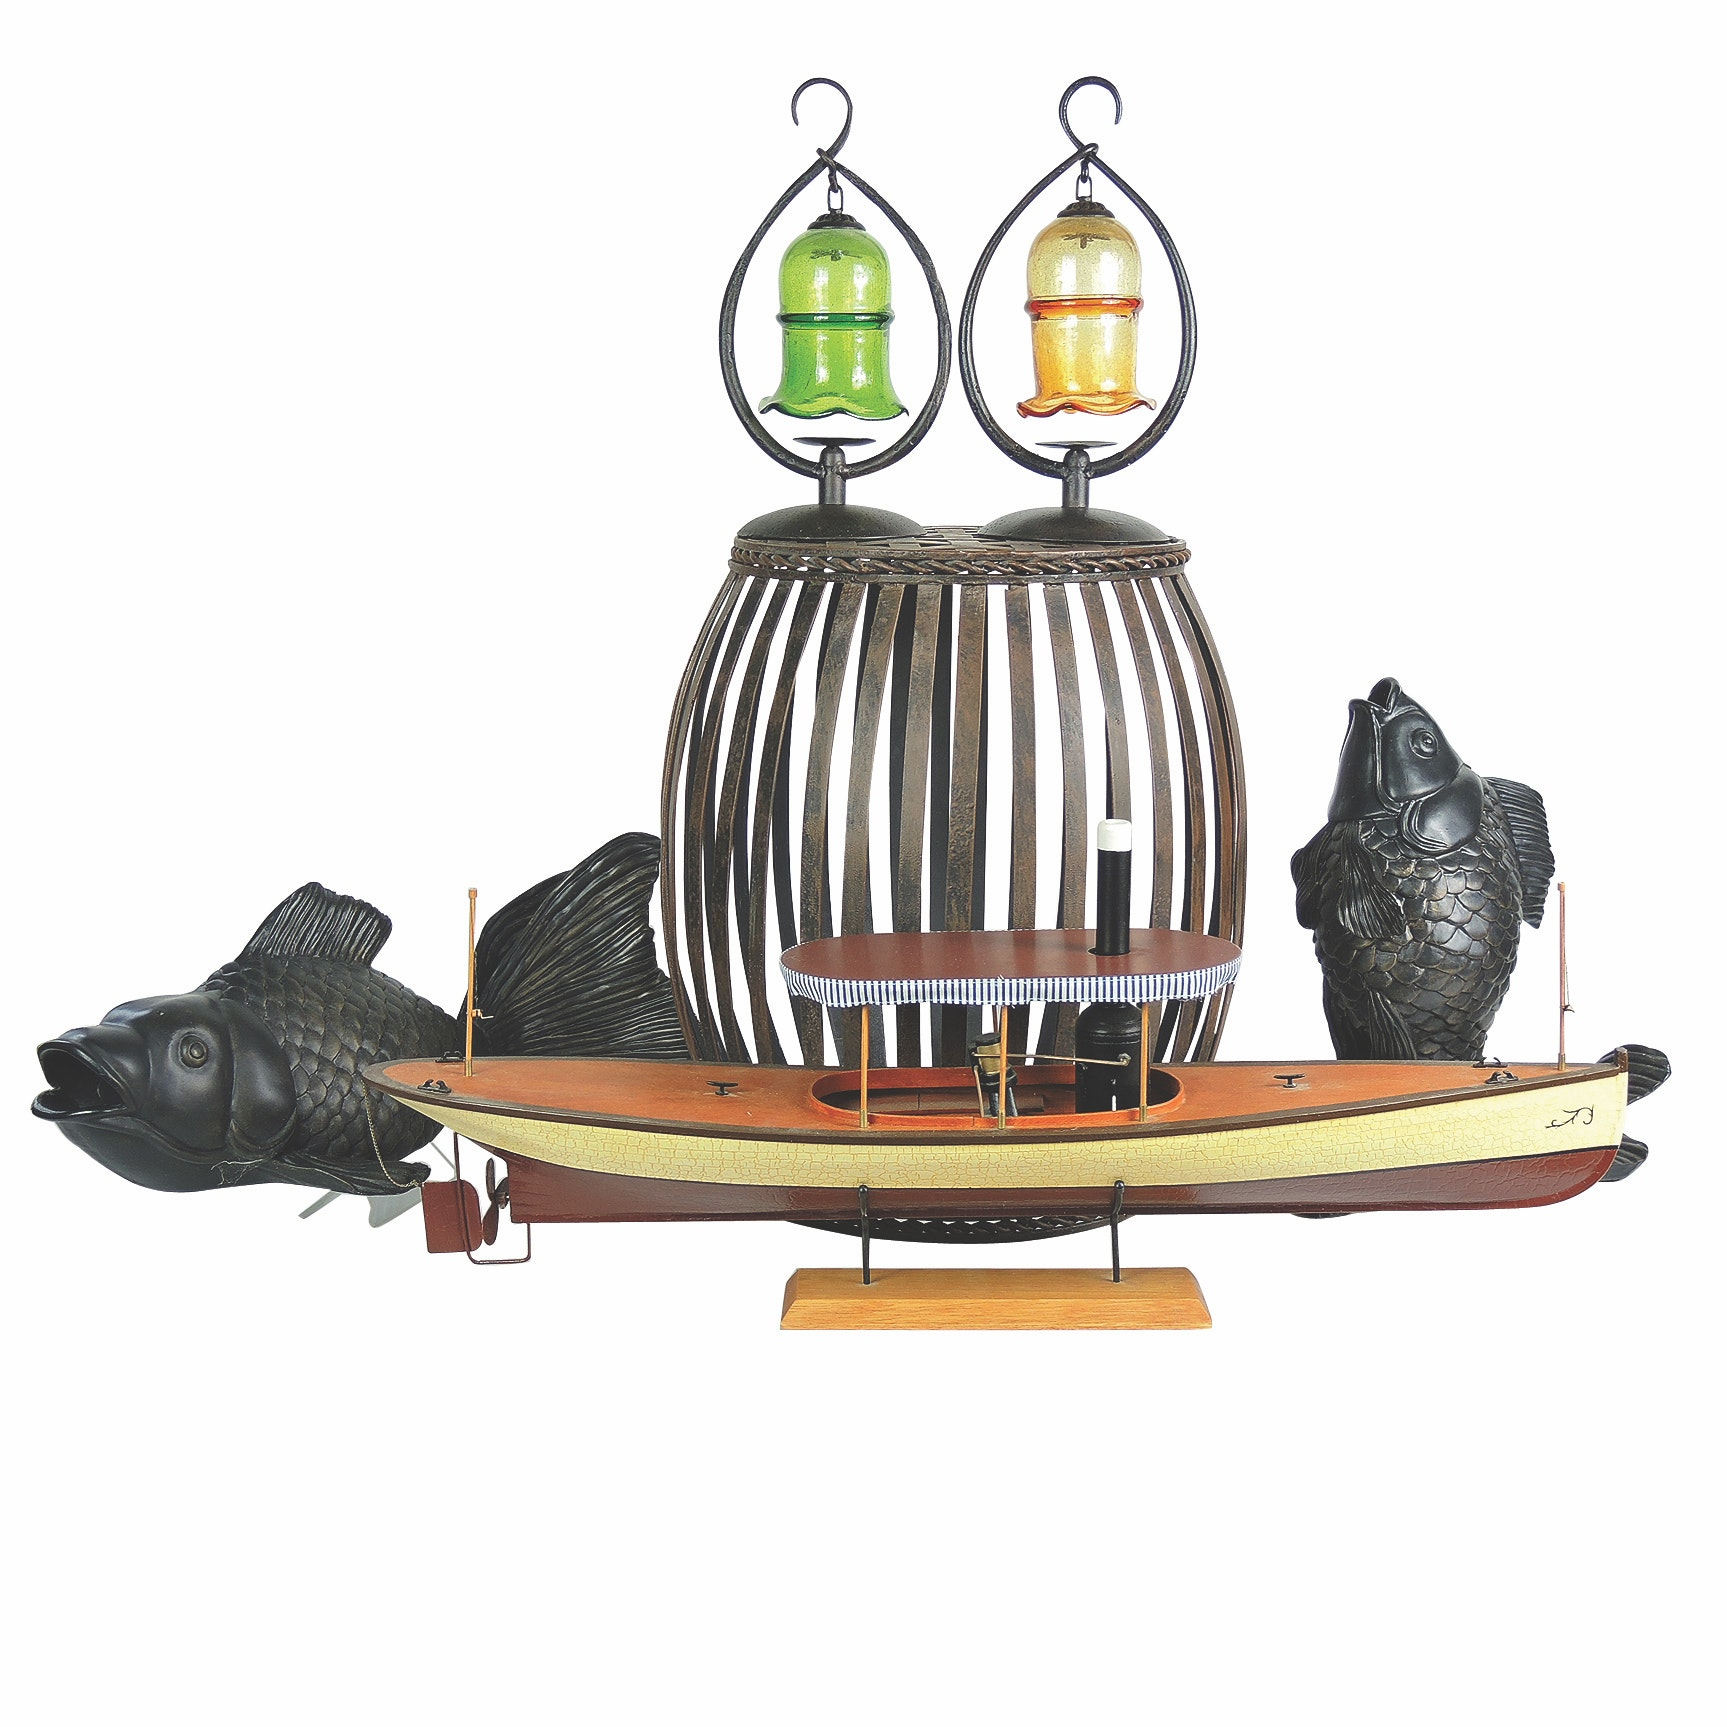 Decorative Home Decor Including Zen Lanterns and Wooden Model Boat